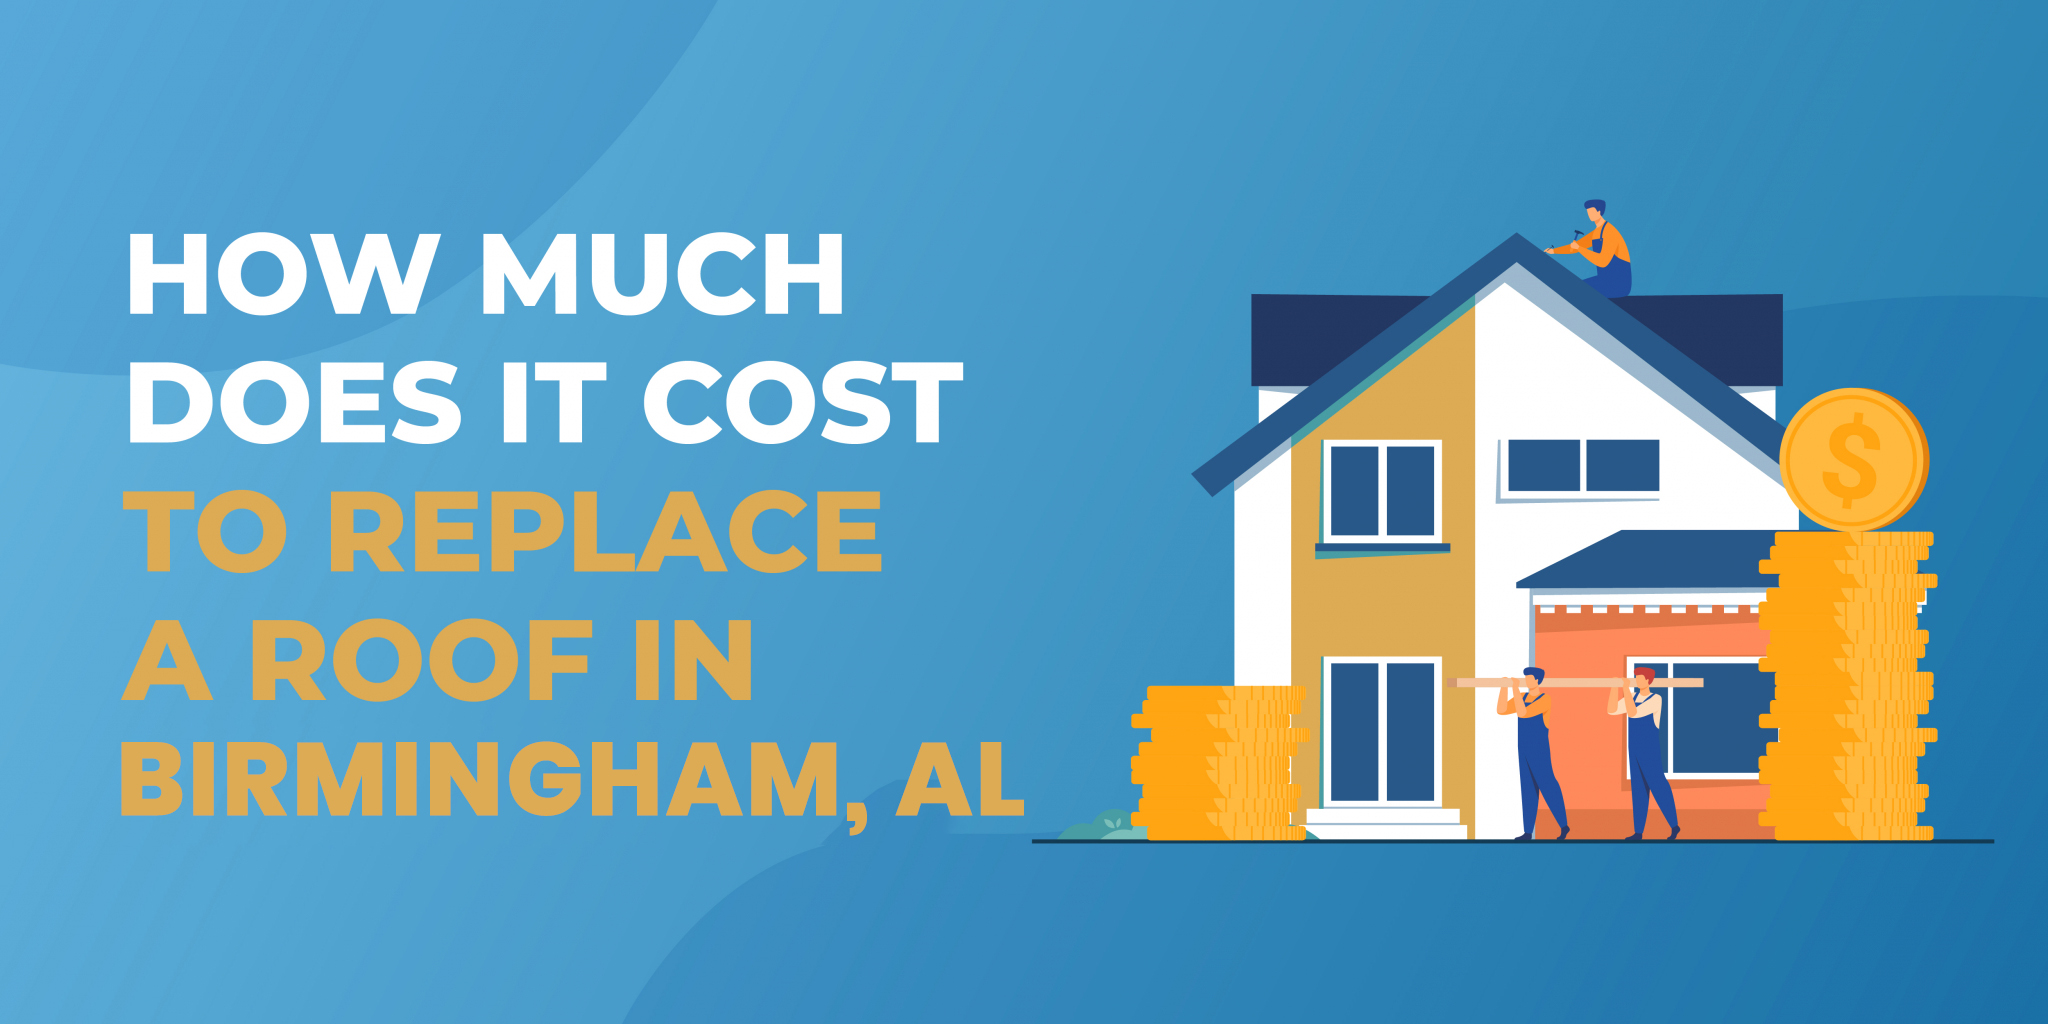 How Much Does it Cost to Replace a Roof in Birmingham, AL